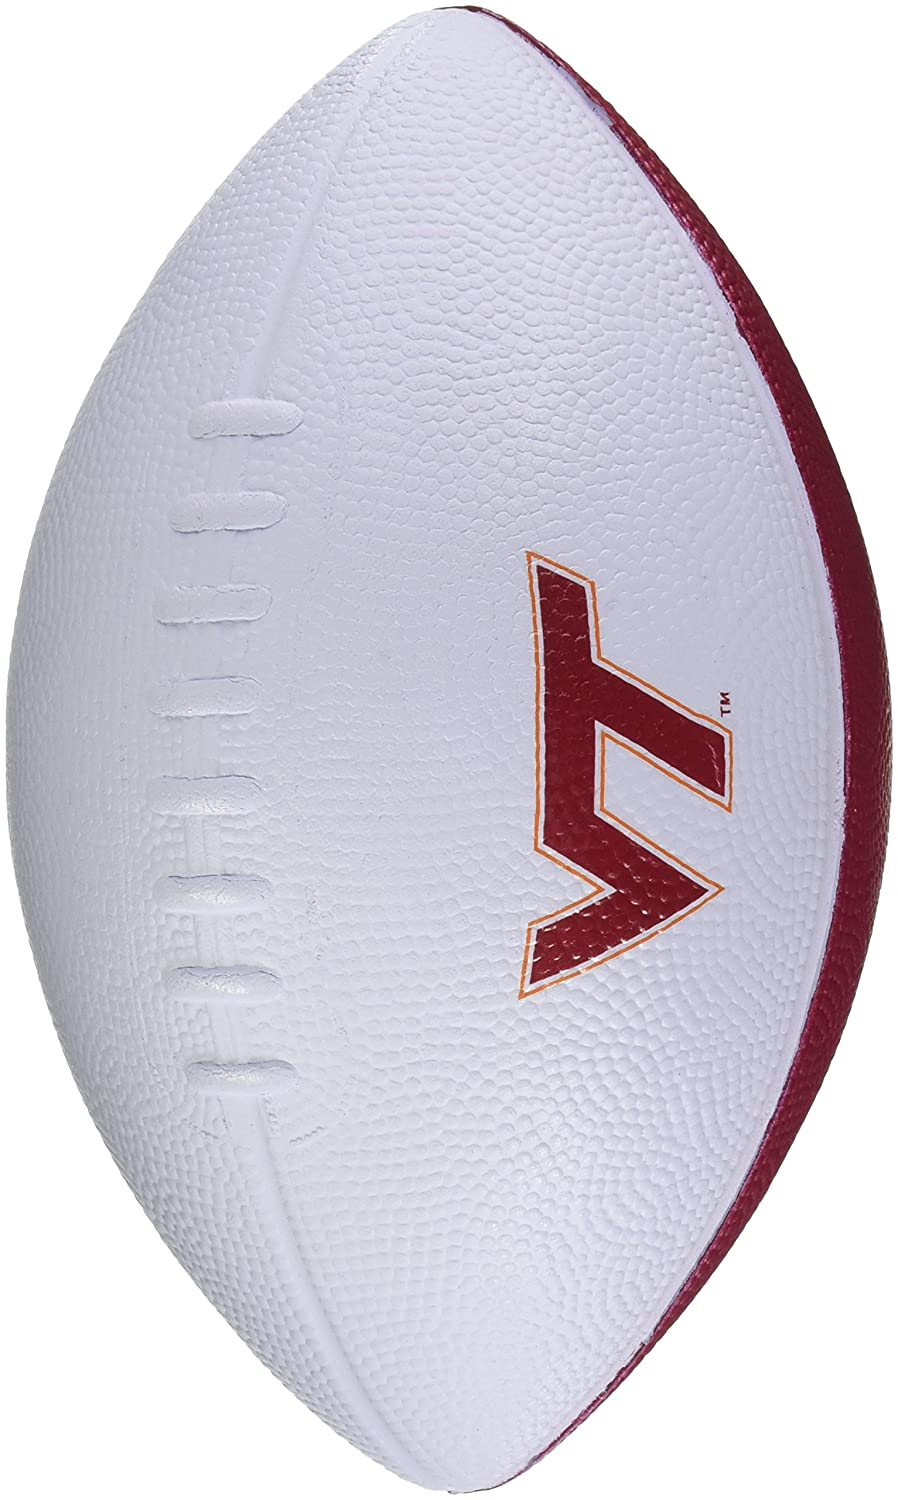 mas barato Patch Products Products Products Virginia Tech Hokies Football  venderse como panqueques